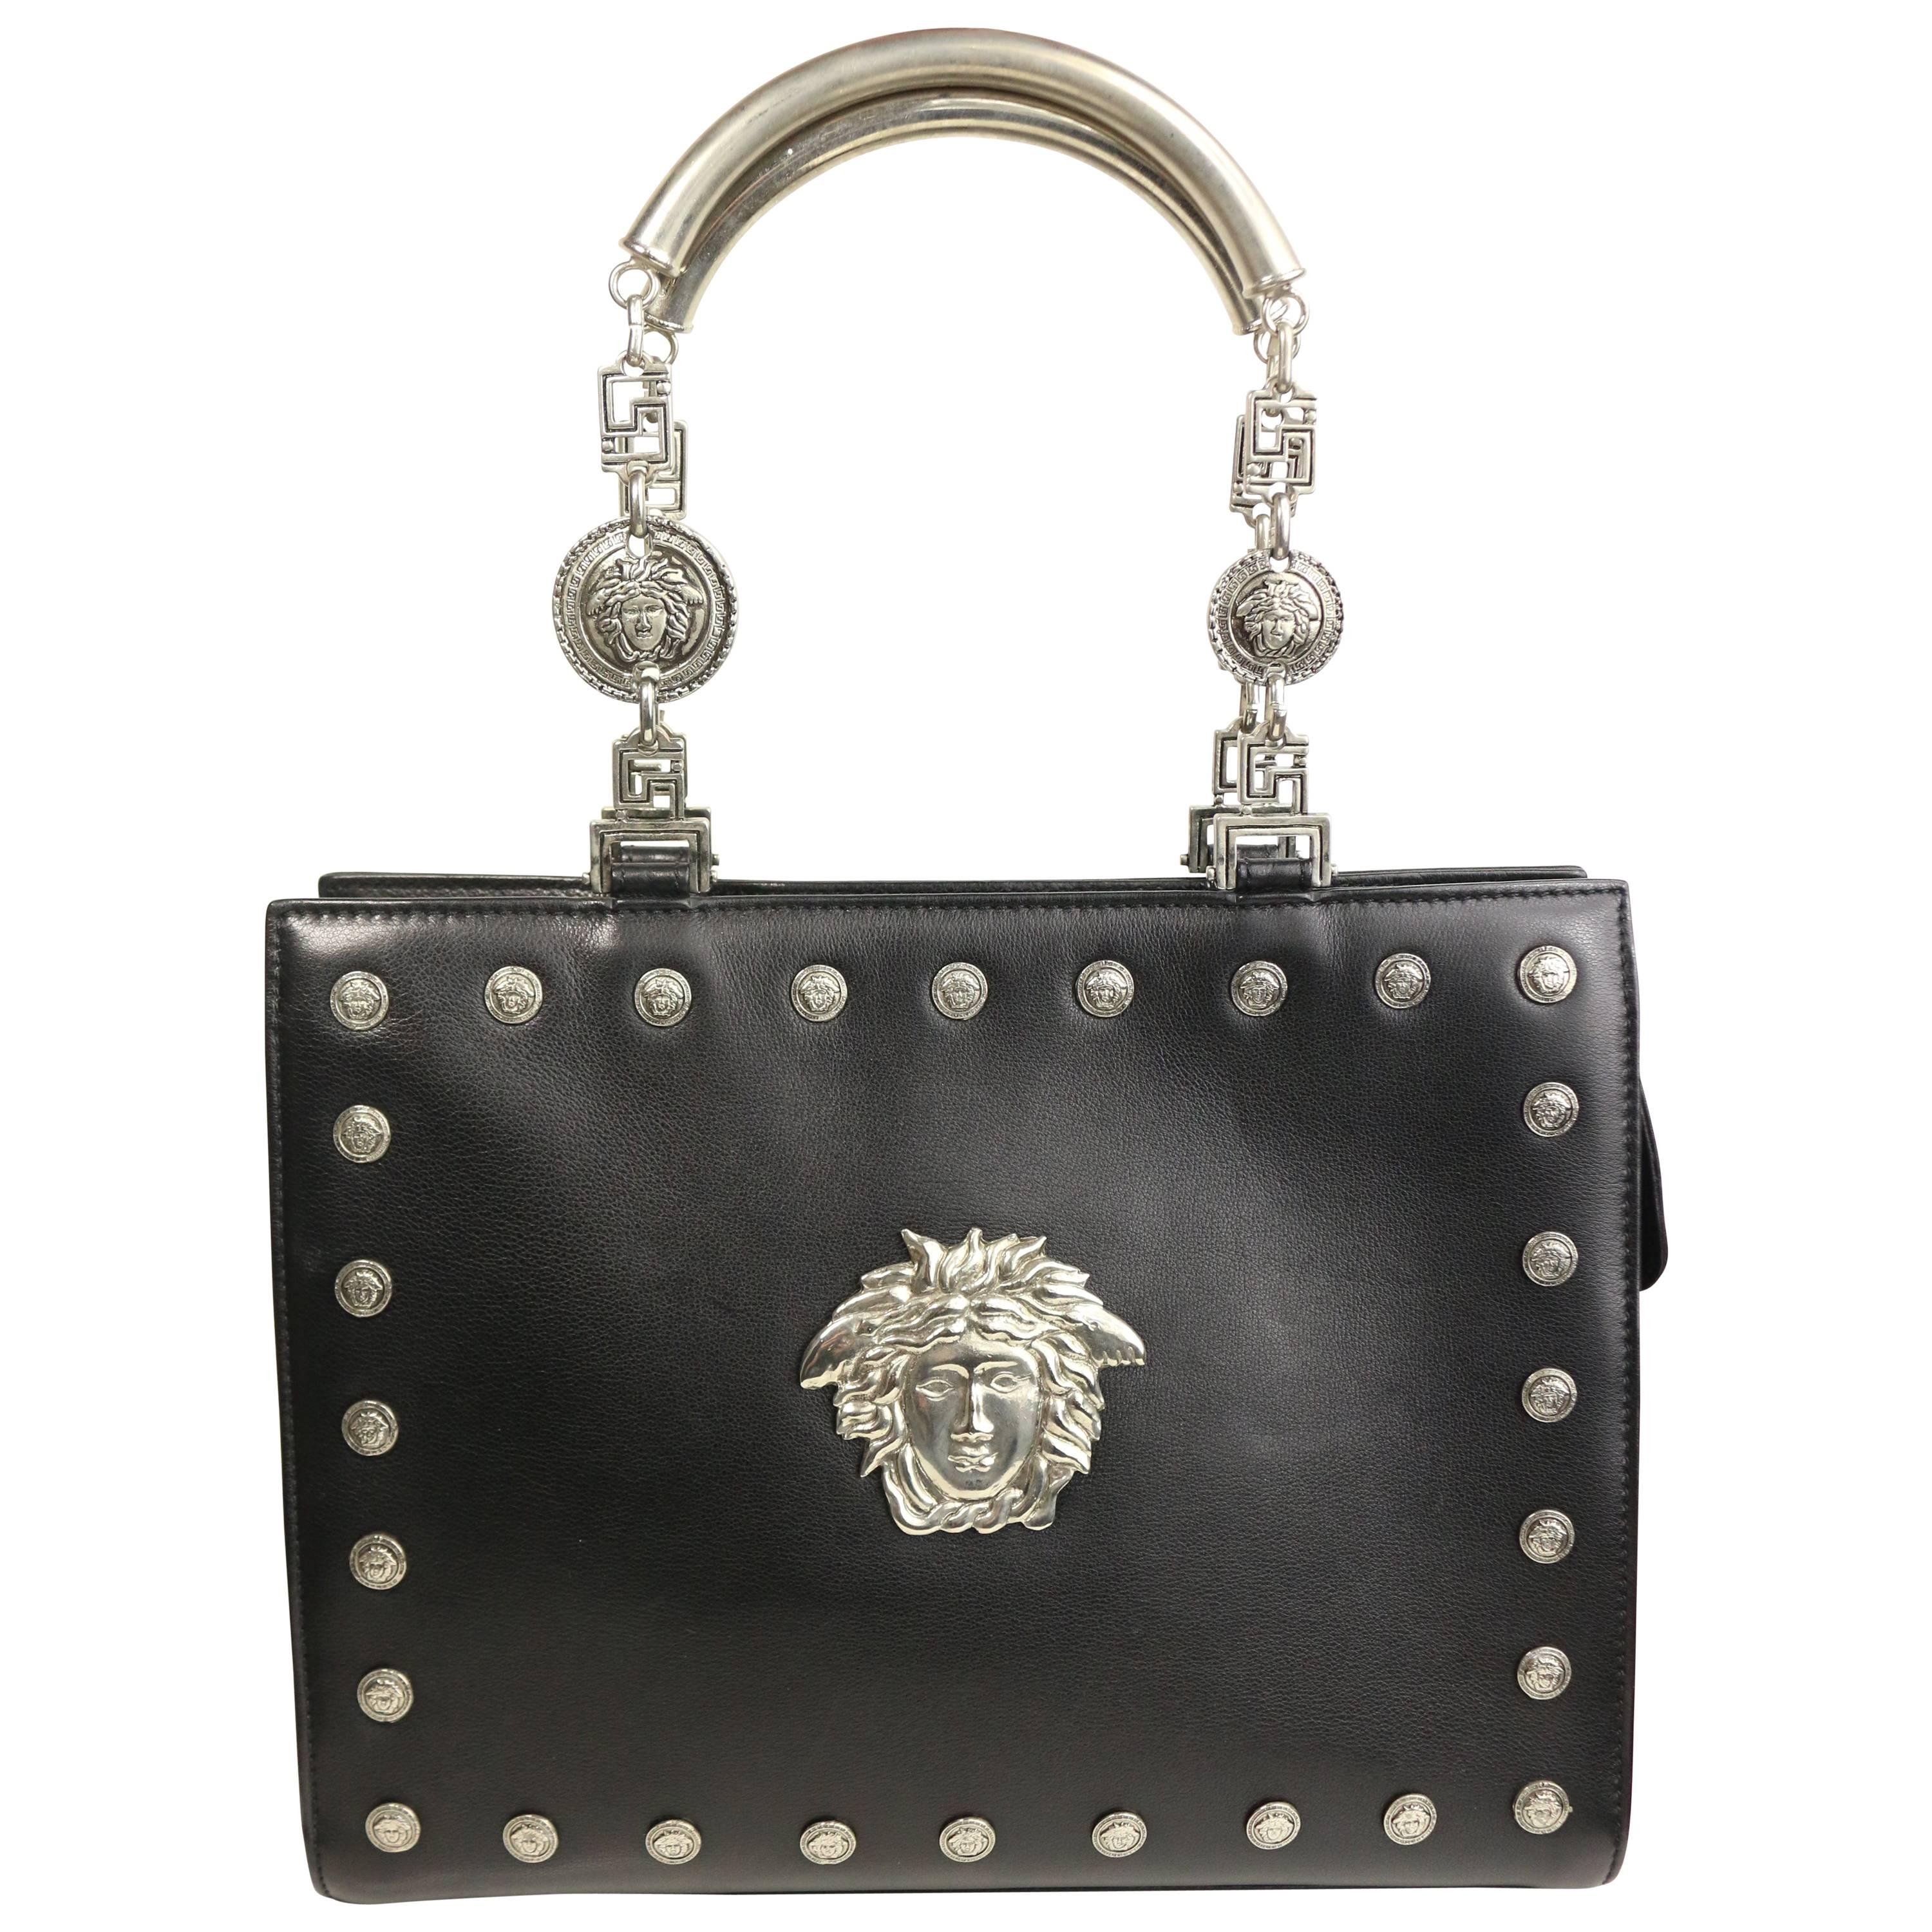 20e88e3a74d0 Gianni Versace Couture Black Leather Embedded Silver Medusa Handbag at  1stdibs